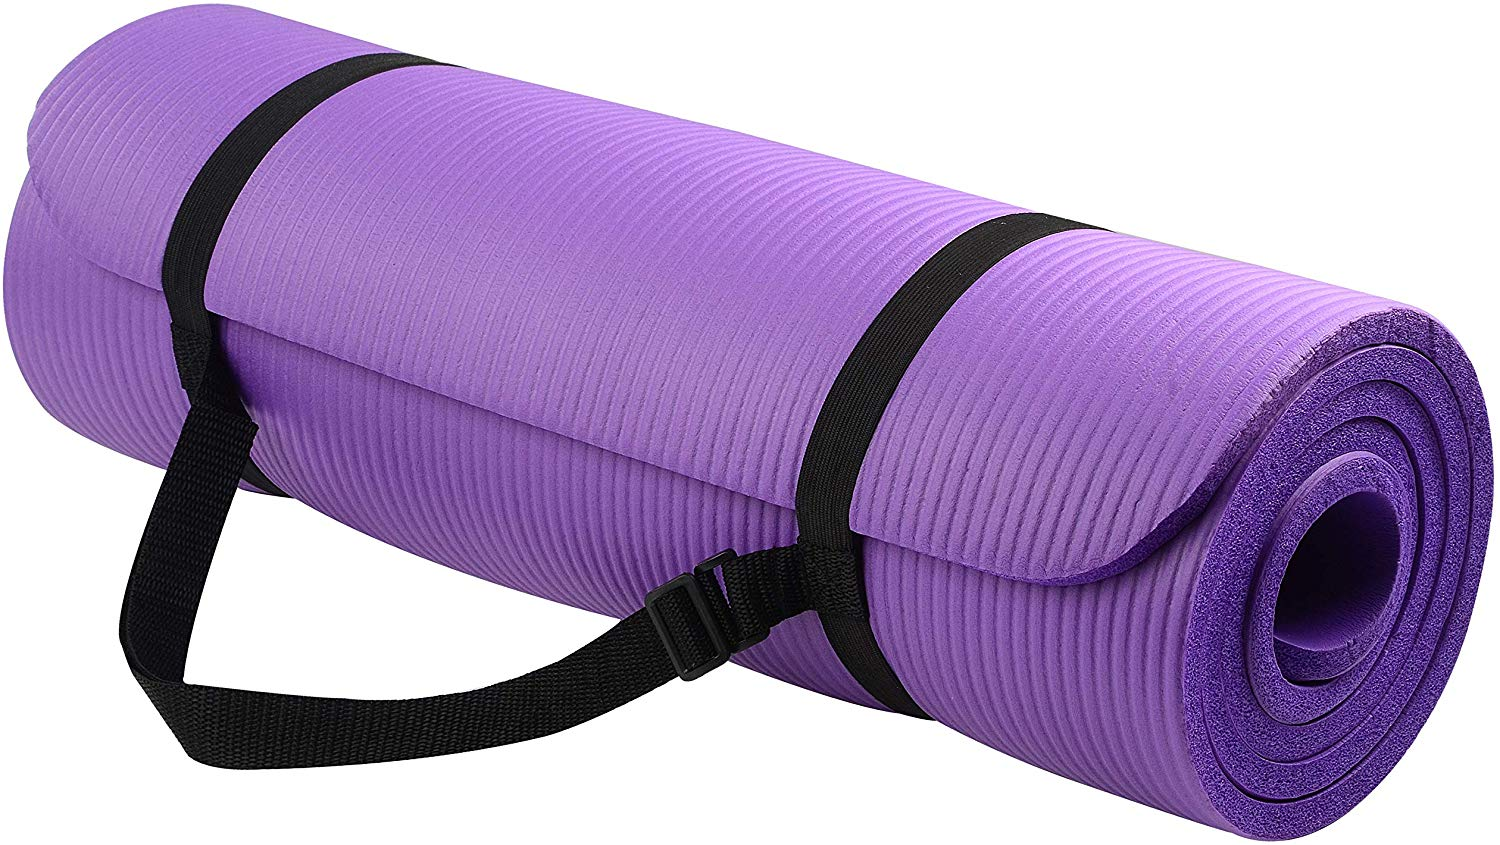 BalanceFrom GoYoga All-Purpose 1/2-Inch Extra Thick High-Density Anti-Tear Exercise Yoga Mat with Carrying Strap